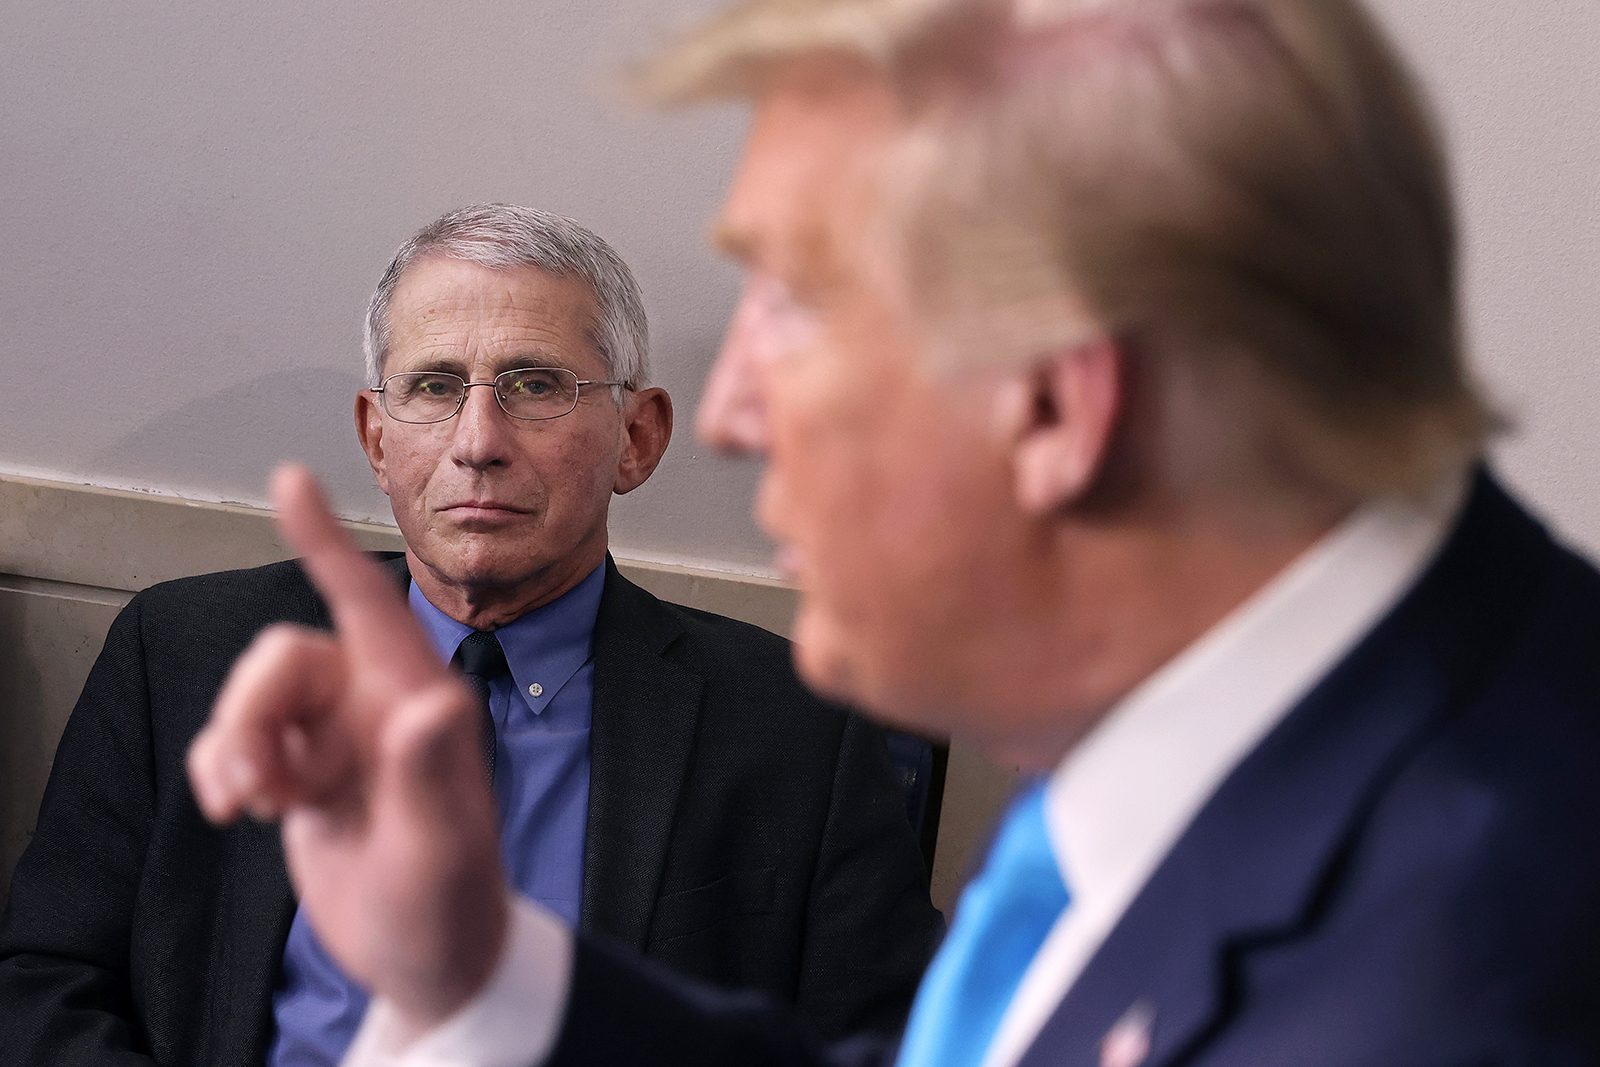 Dr. Anthony Fauci, director of the National Institute of Allergy and Infectious Diseases, listens to President Donald Trump speak to reporters at the White House in Washington, DC, on April 7, 2020.